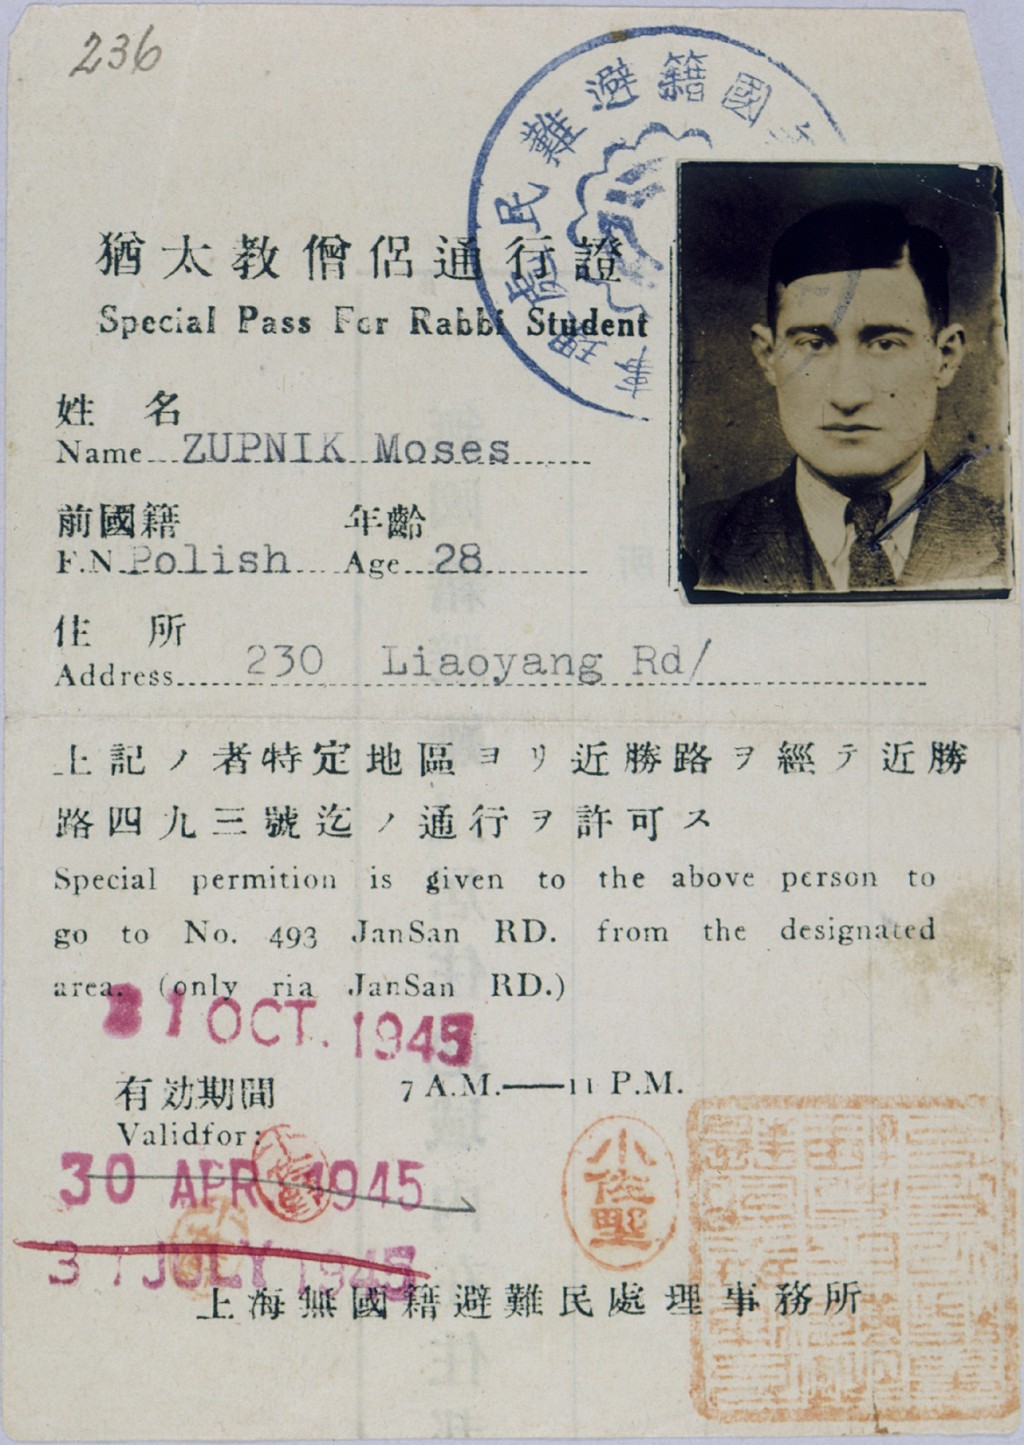 "<p>Special pass issued to rabbinical student Moshe Zupnik. Yeshiva students had to obtain special passes from Japanese authorities to leave the ""designated area"" in order to continue their studies at the Beth Aharon Synagogue, which was located outside the zone. [From the USHMM special exhibition Flight and Rescue.]</p>"